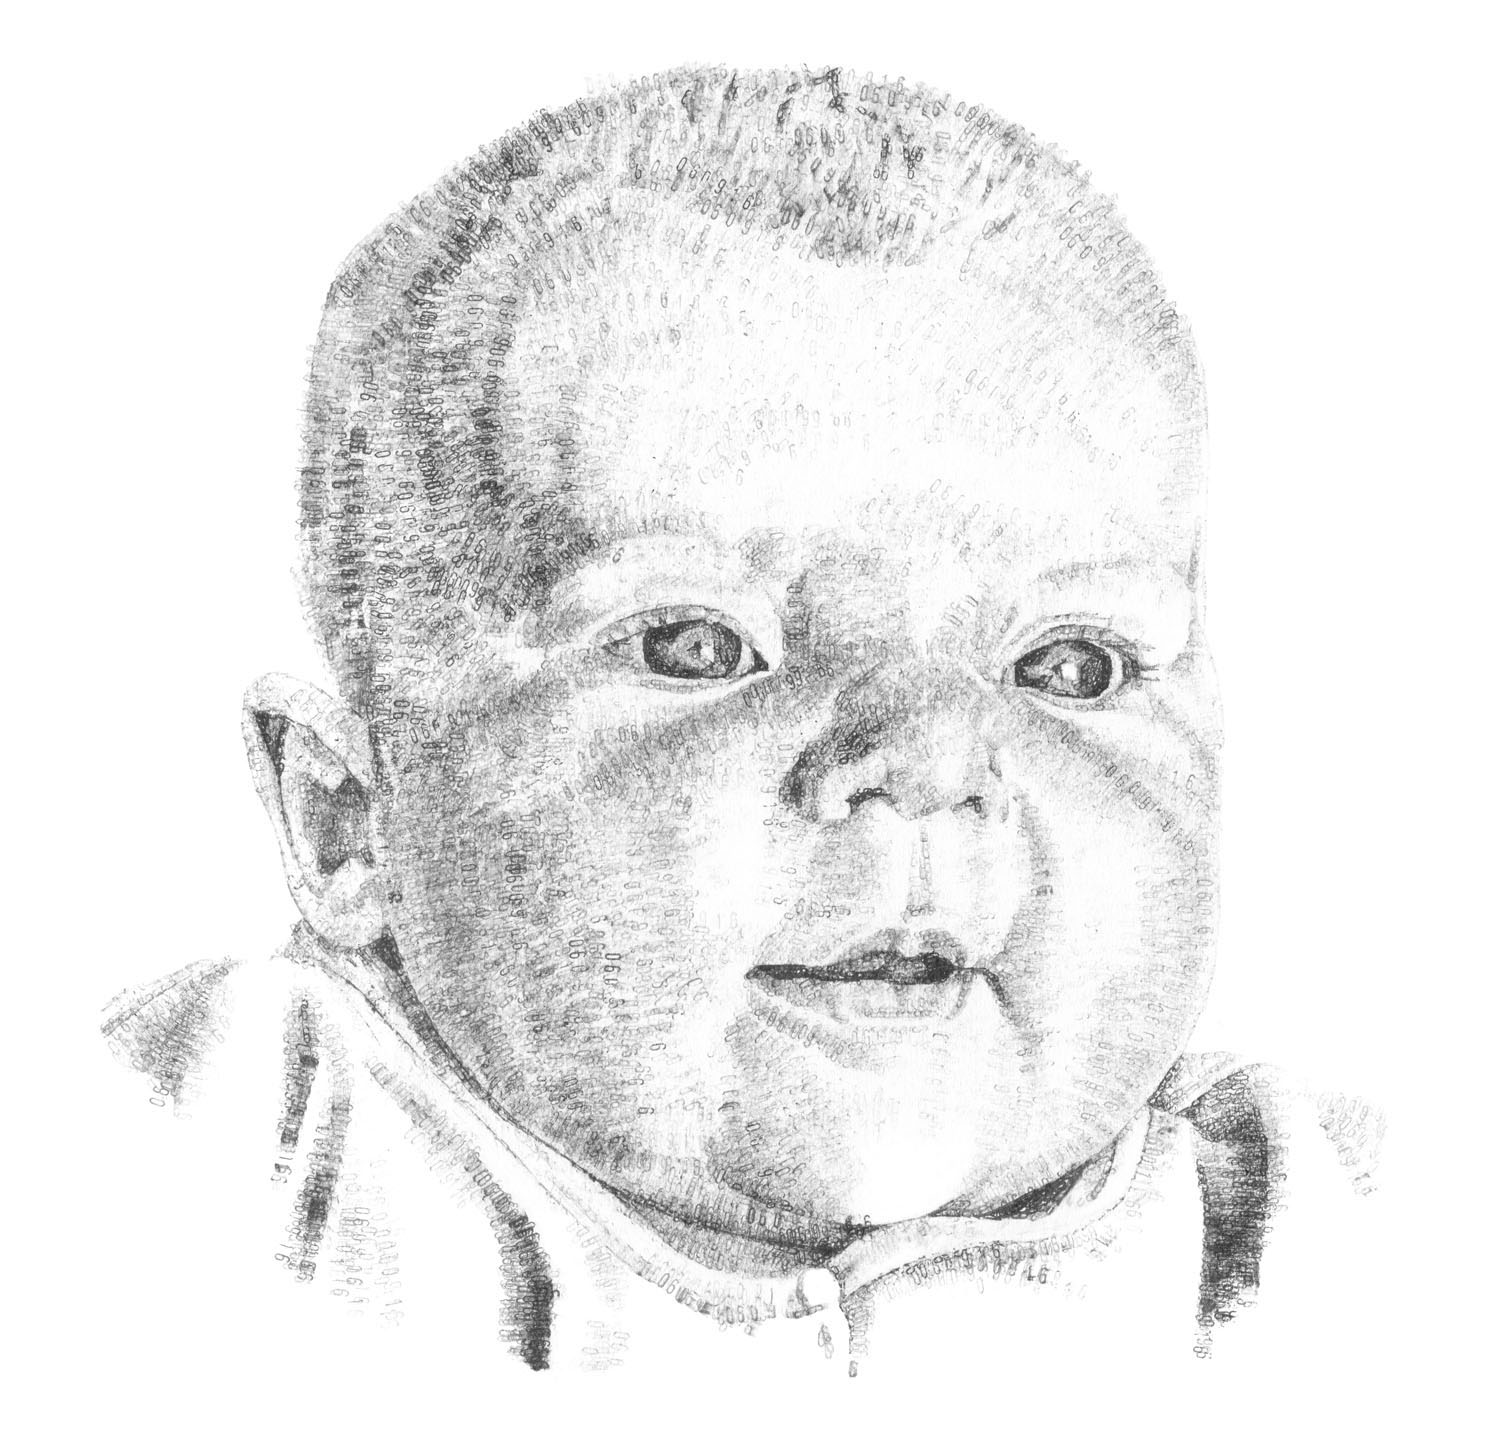 Ottilie, aged 6 months, 2017, date stamp and ink on paper, 40 x 60 cm